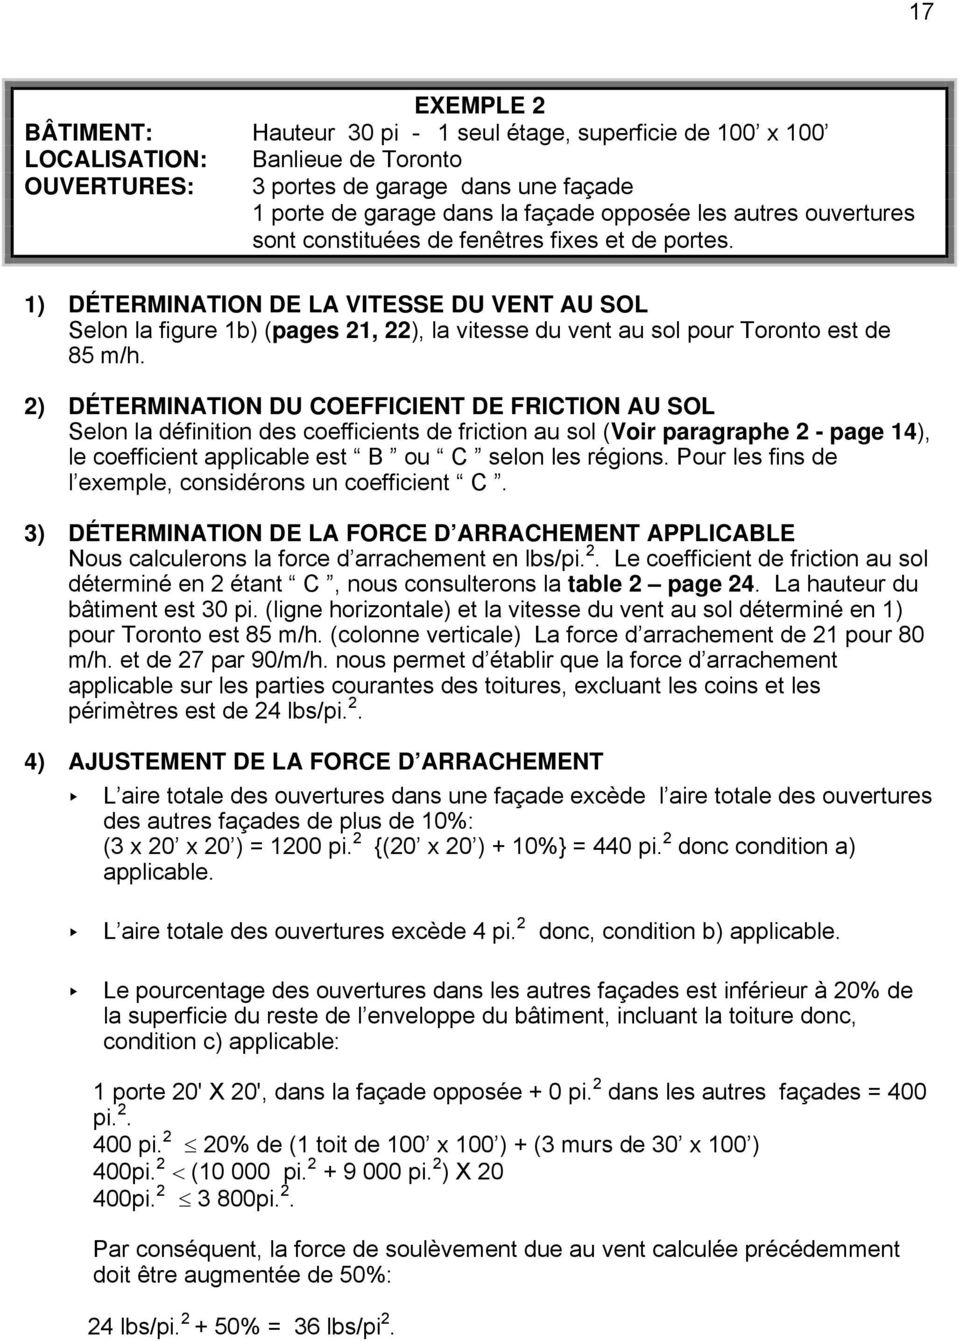 2) DÉTERMINATION DU COEFFICIENT DE FRICTION AU SOL Selon la définition des coefficients de friction au sol (Voir paragraphe 2 - page 4), le coefficient applicable est B ou C selon les régions.